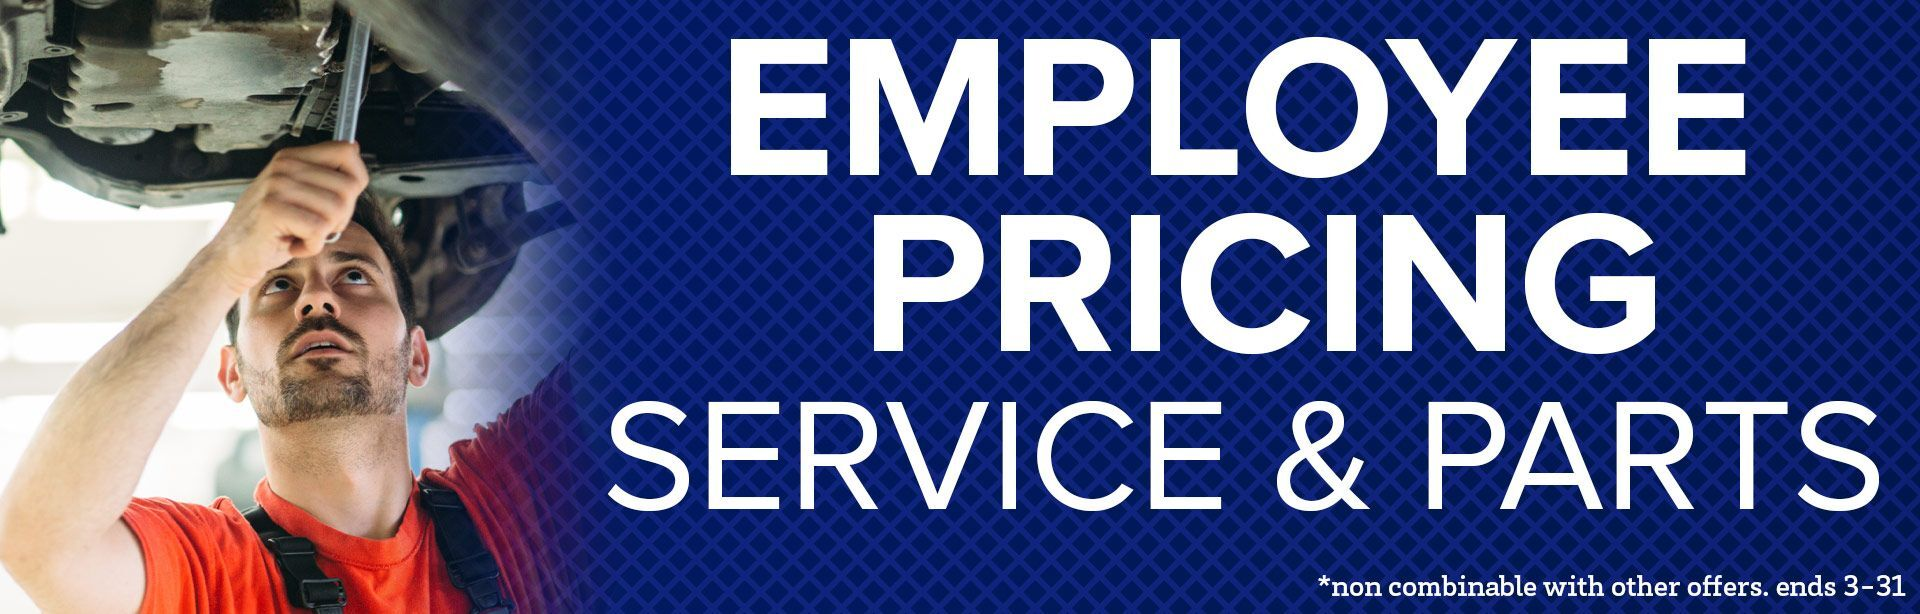 Employee Pricing Banner